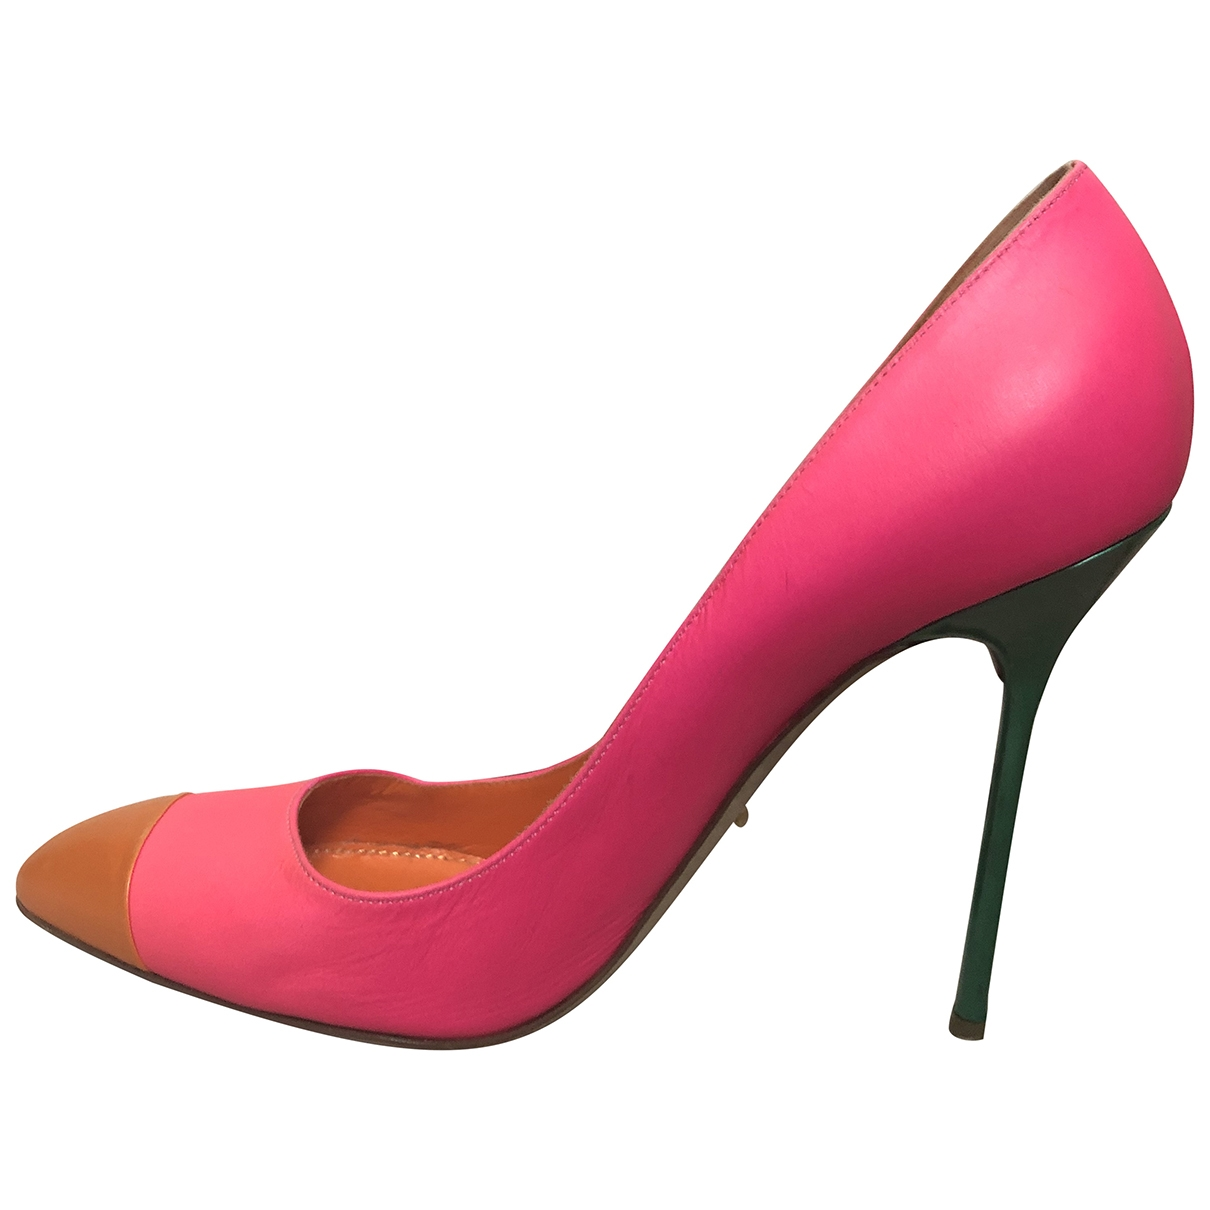 Sergio Rossi \N Pink Leather Heels for Women 40 EU